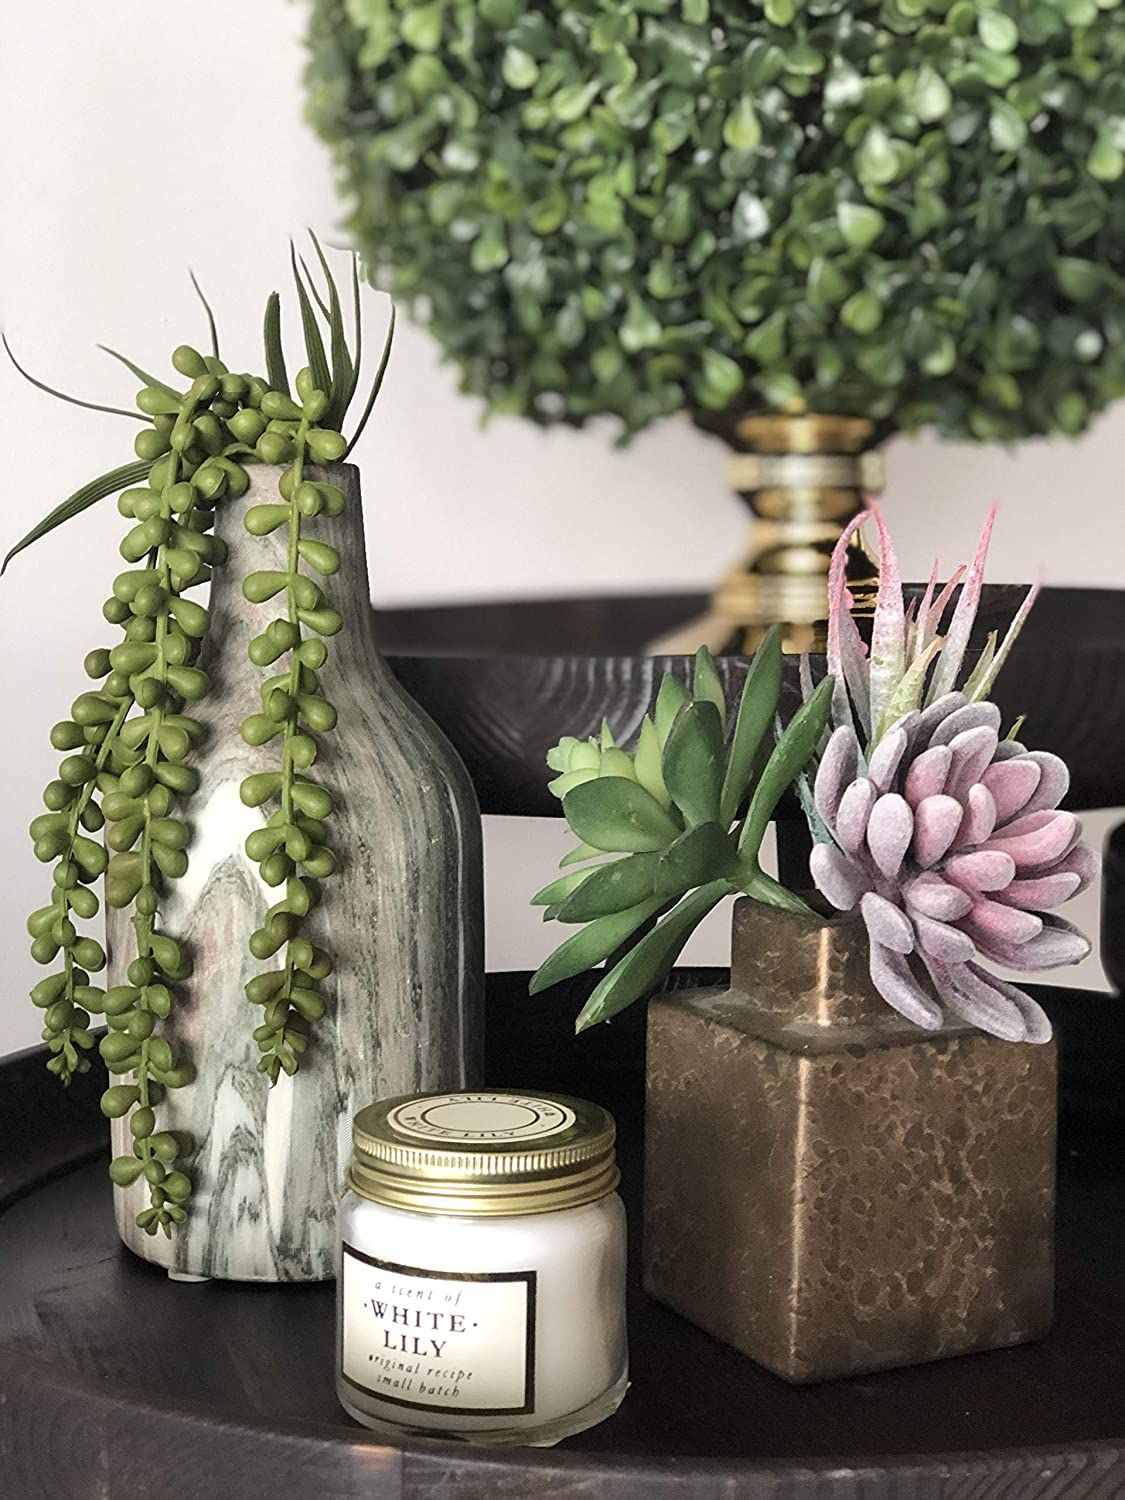 16 pcs various 1.6″- 6.7″ artificial succulent plants including stem, this is the ultimate faux greenery bulk bundle. Use it to decorate a wreath, a planter, a terrarium, or simply use in individual decorative mini pots even bookshelf and DIY decoration. With these new edition improved realistic looking succulents no one but just you will know they are artificial... #ArtificialFlowers #DecorationBouquets #ArtificialPlants #FakePlants #HomeDecor #ad